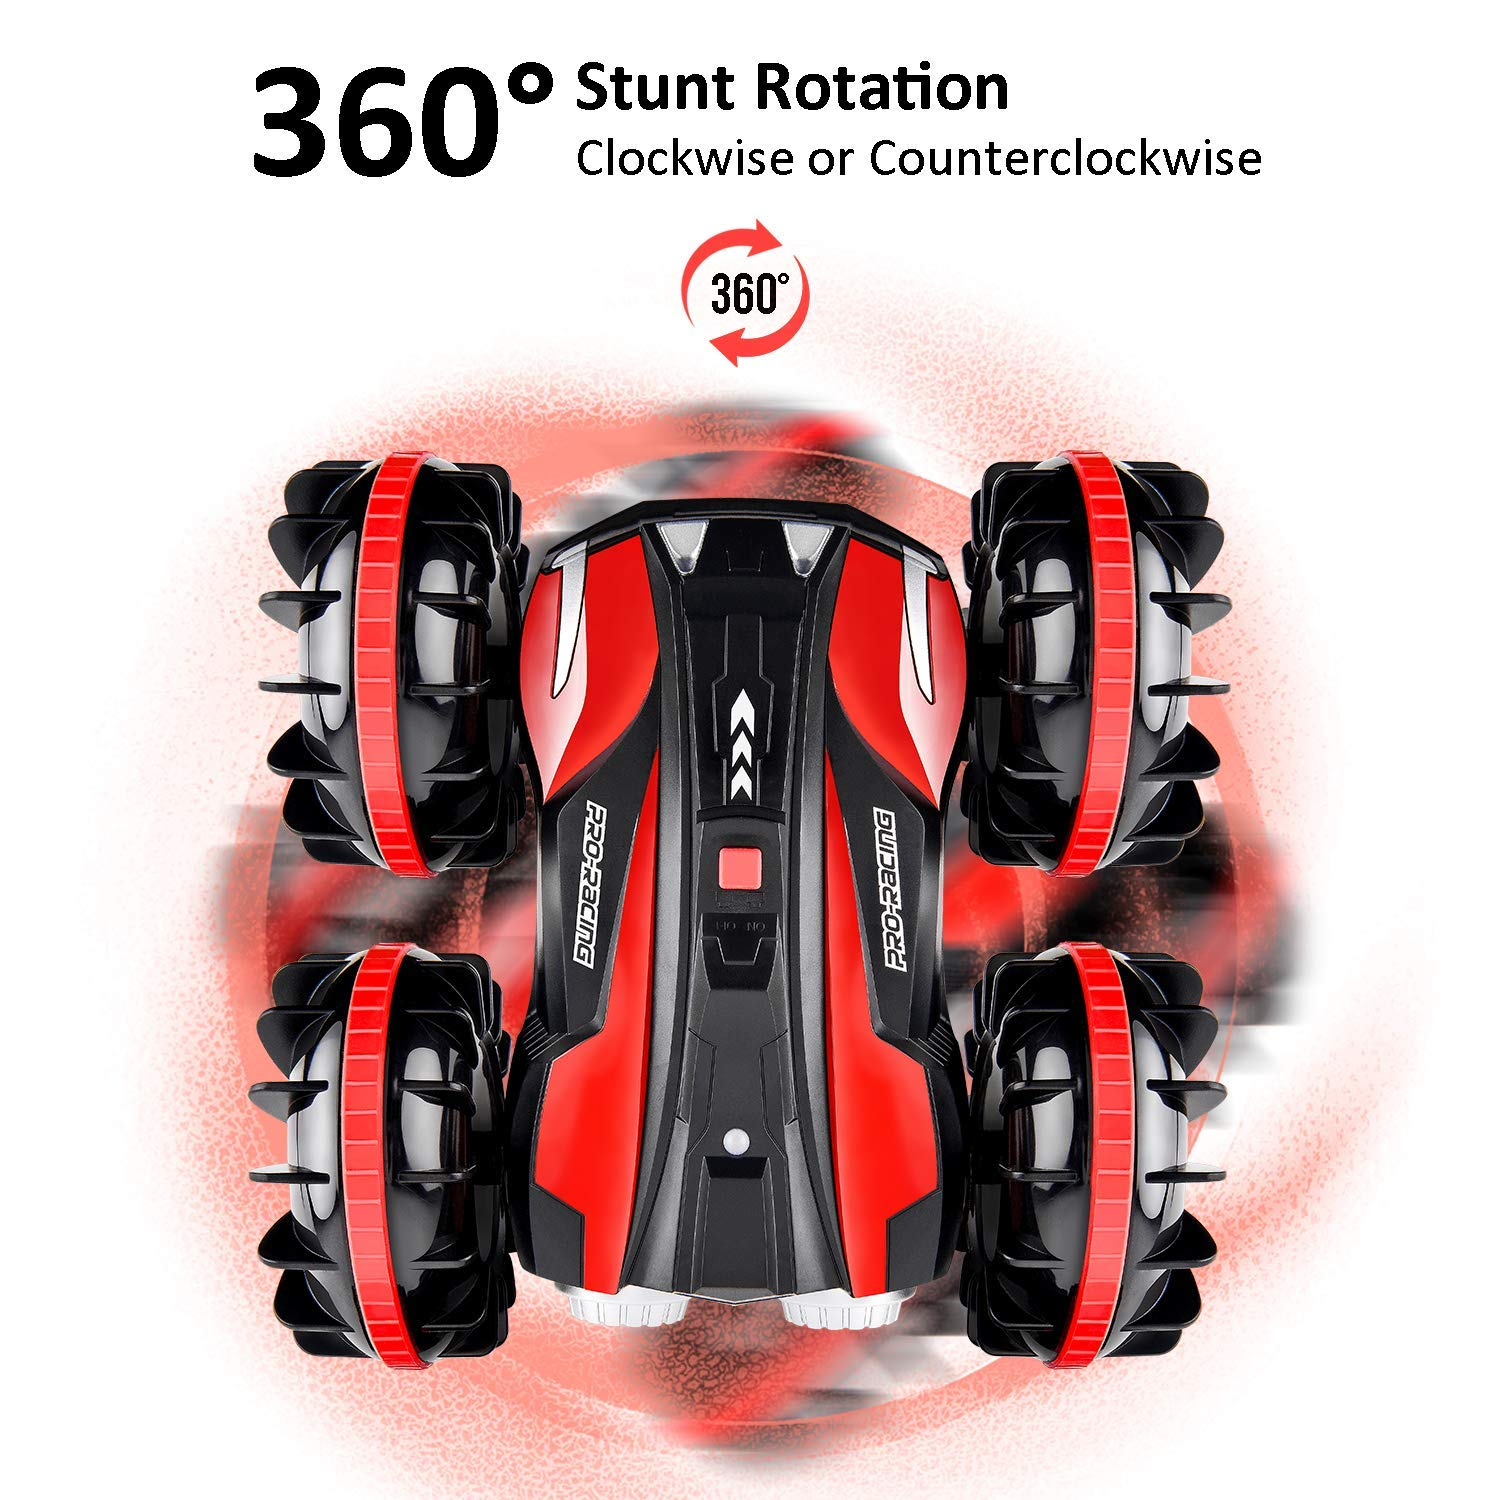 Waterproof RC Cars for Kids Remote Control Car Boat RC Truck Amphibious Stunt Car 4WD Off Road 2.4GHz Radio Controlled Vehicle 360 Degree Rotates Toys for 7-16 Year Old Boys Girls Birthday Gift Red by ROOYA BABY (Image #2)